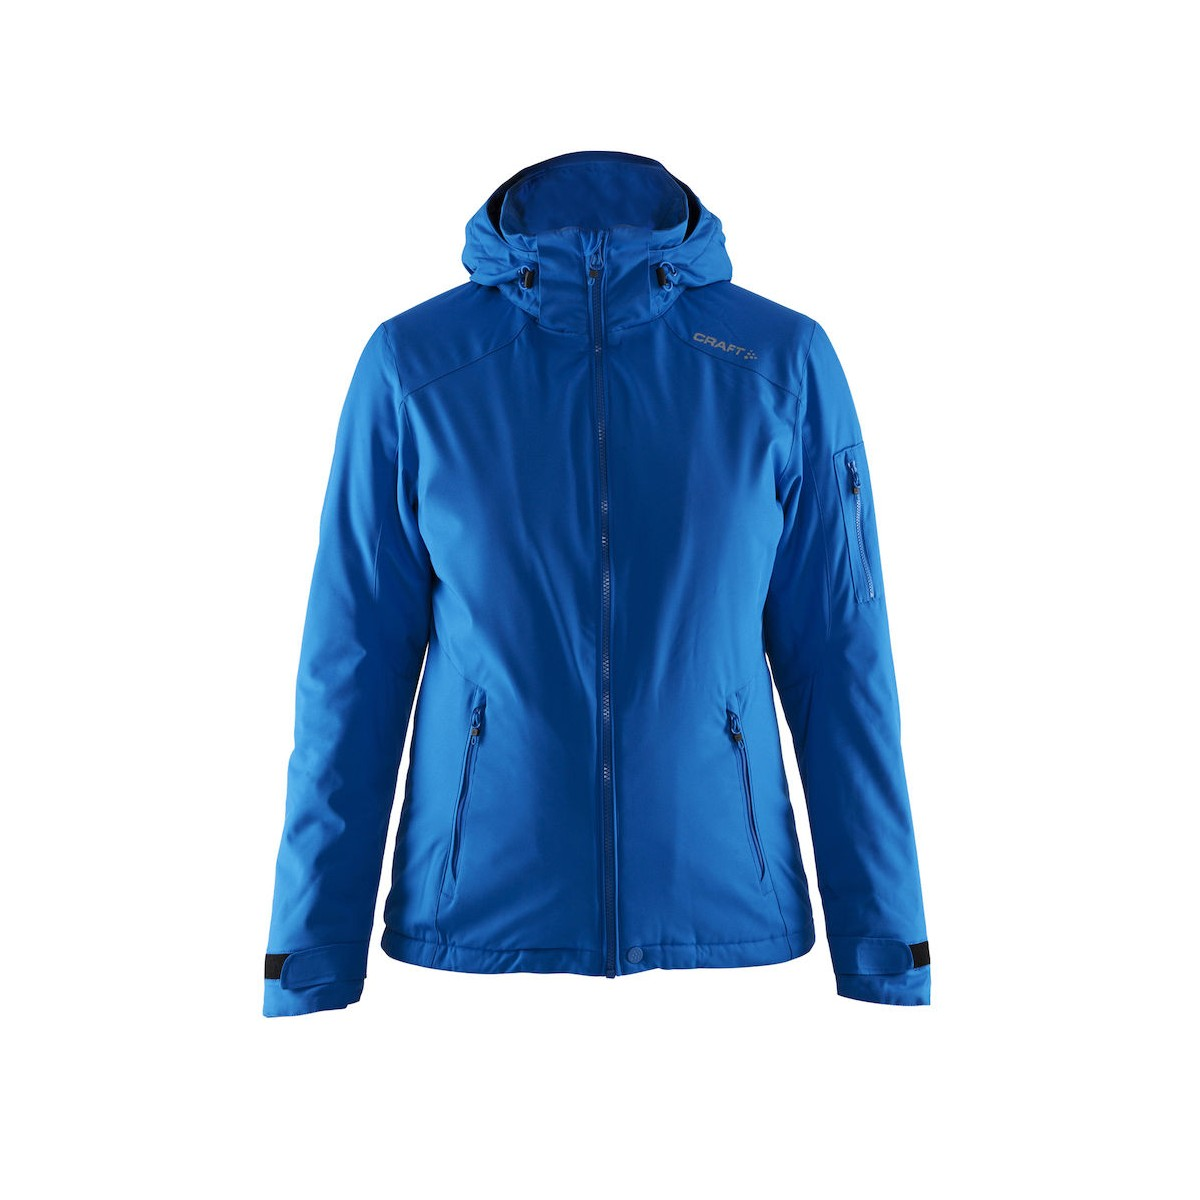 isola-jacket-sweden-blue-dame